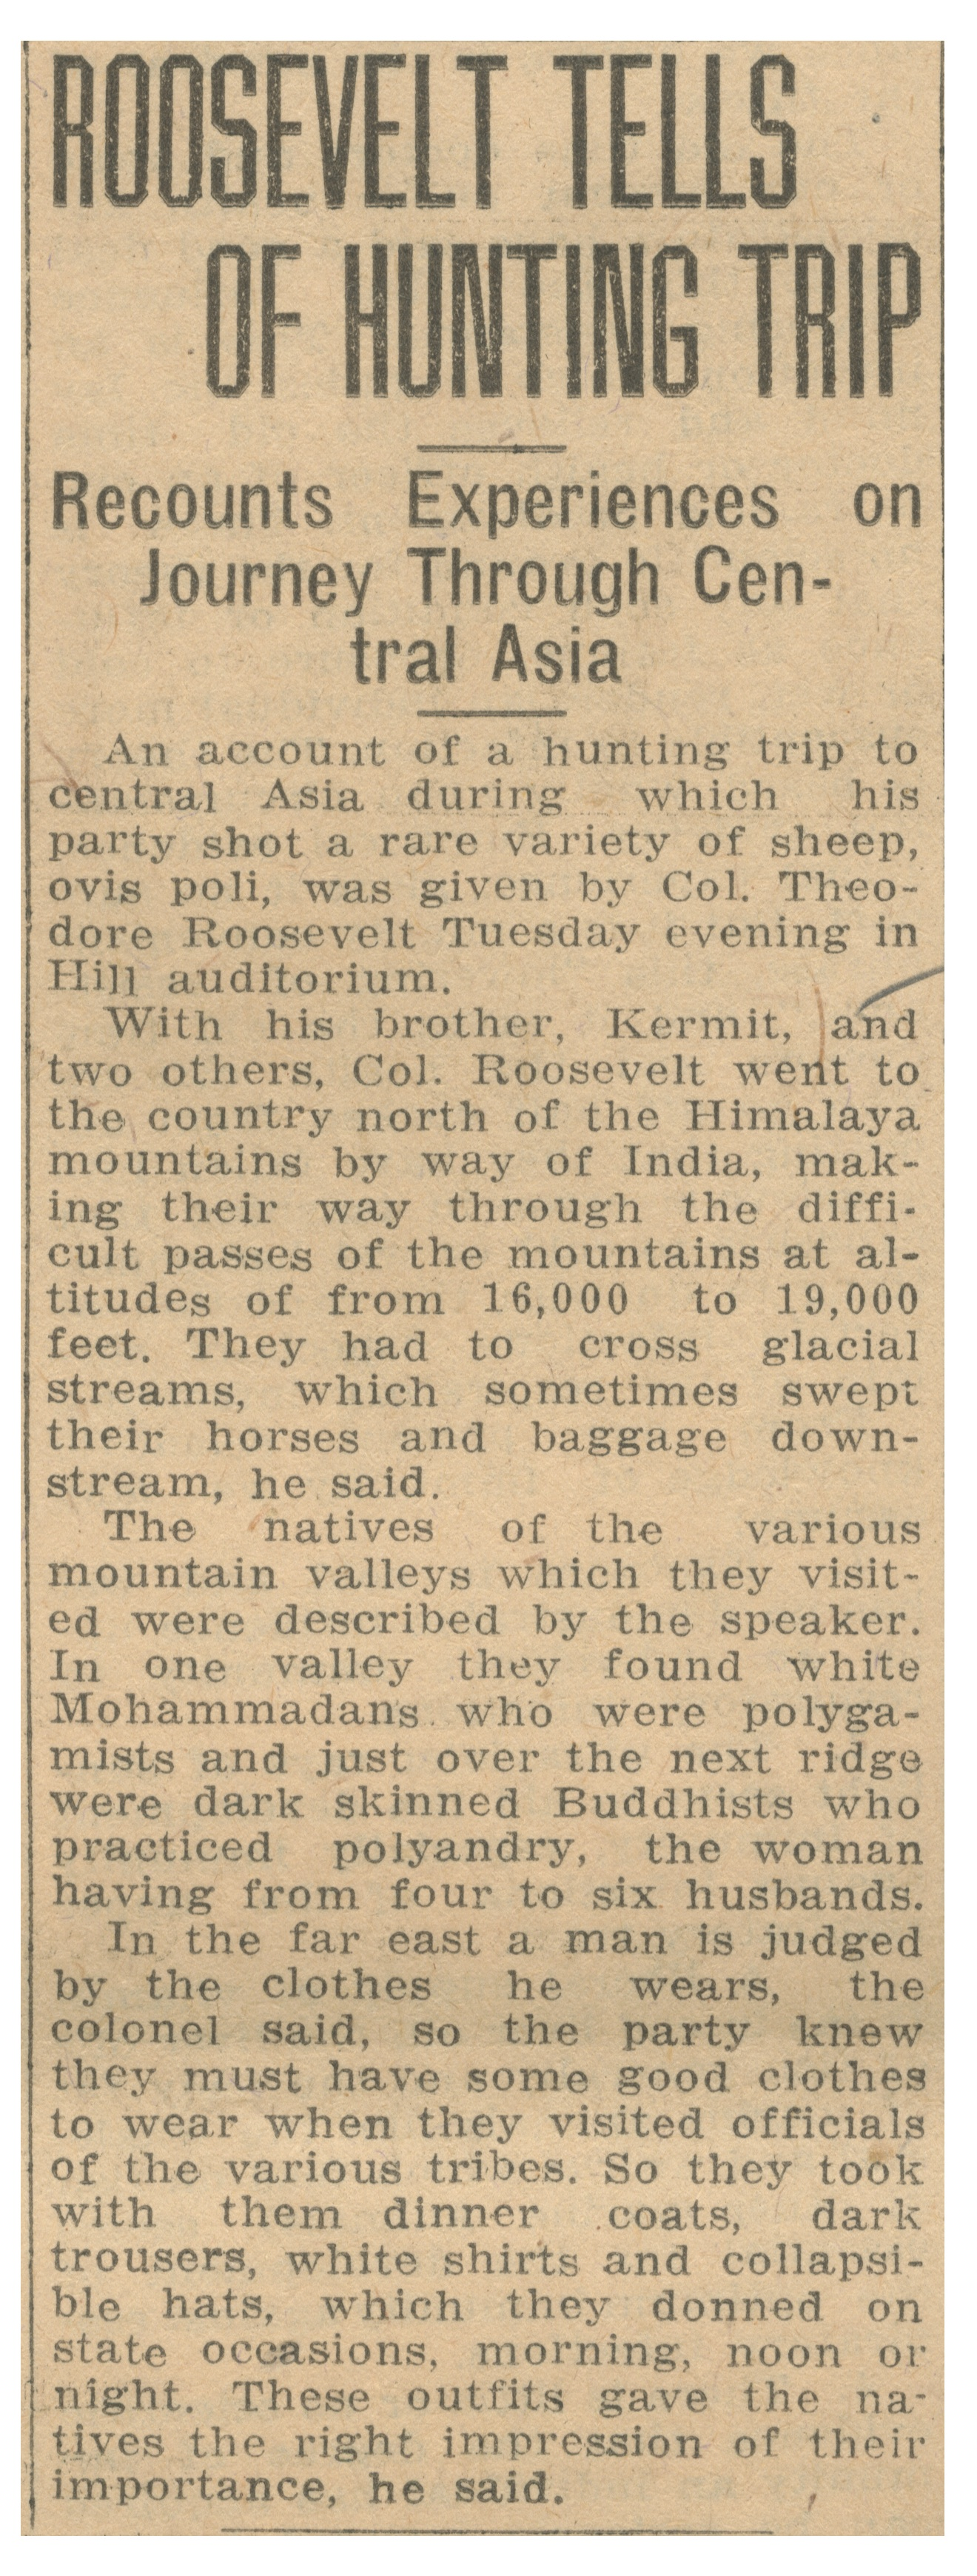 Roosevelt Tells Of Hunting Trip: Recounts Experiences On Journey Through Central Asia - March 30, 1927 image